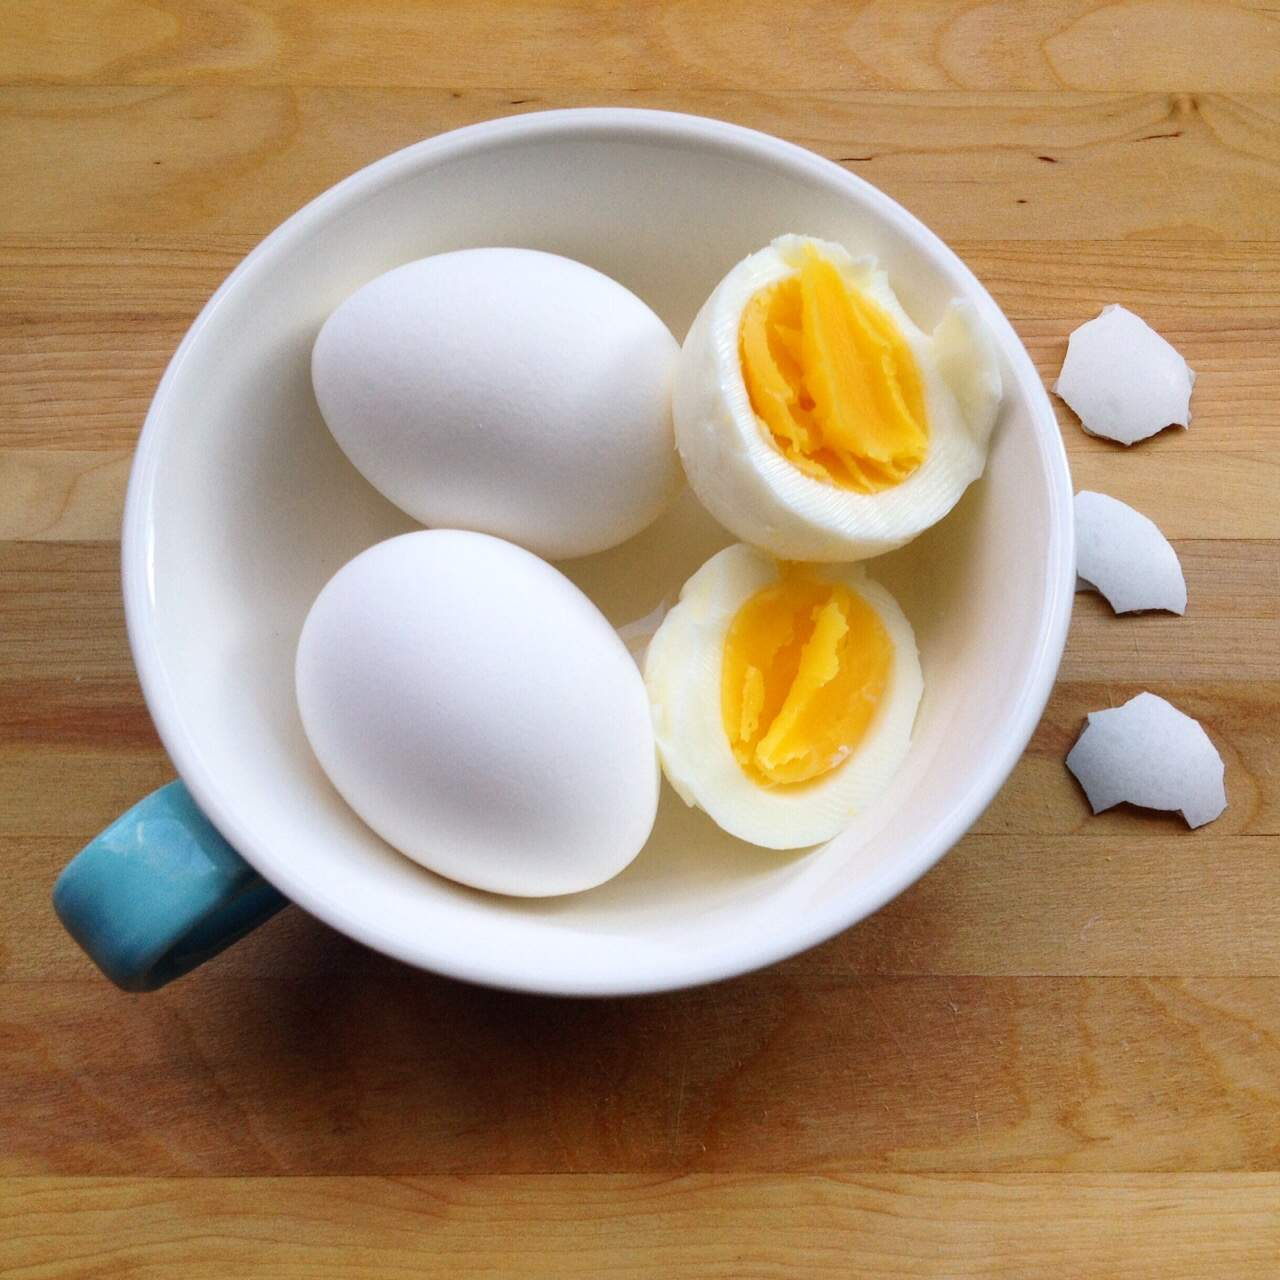 Hard boiled egg perfection recipe